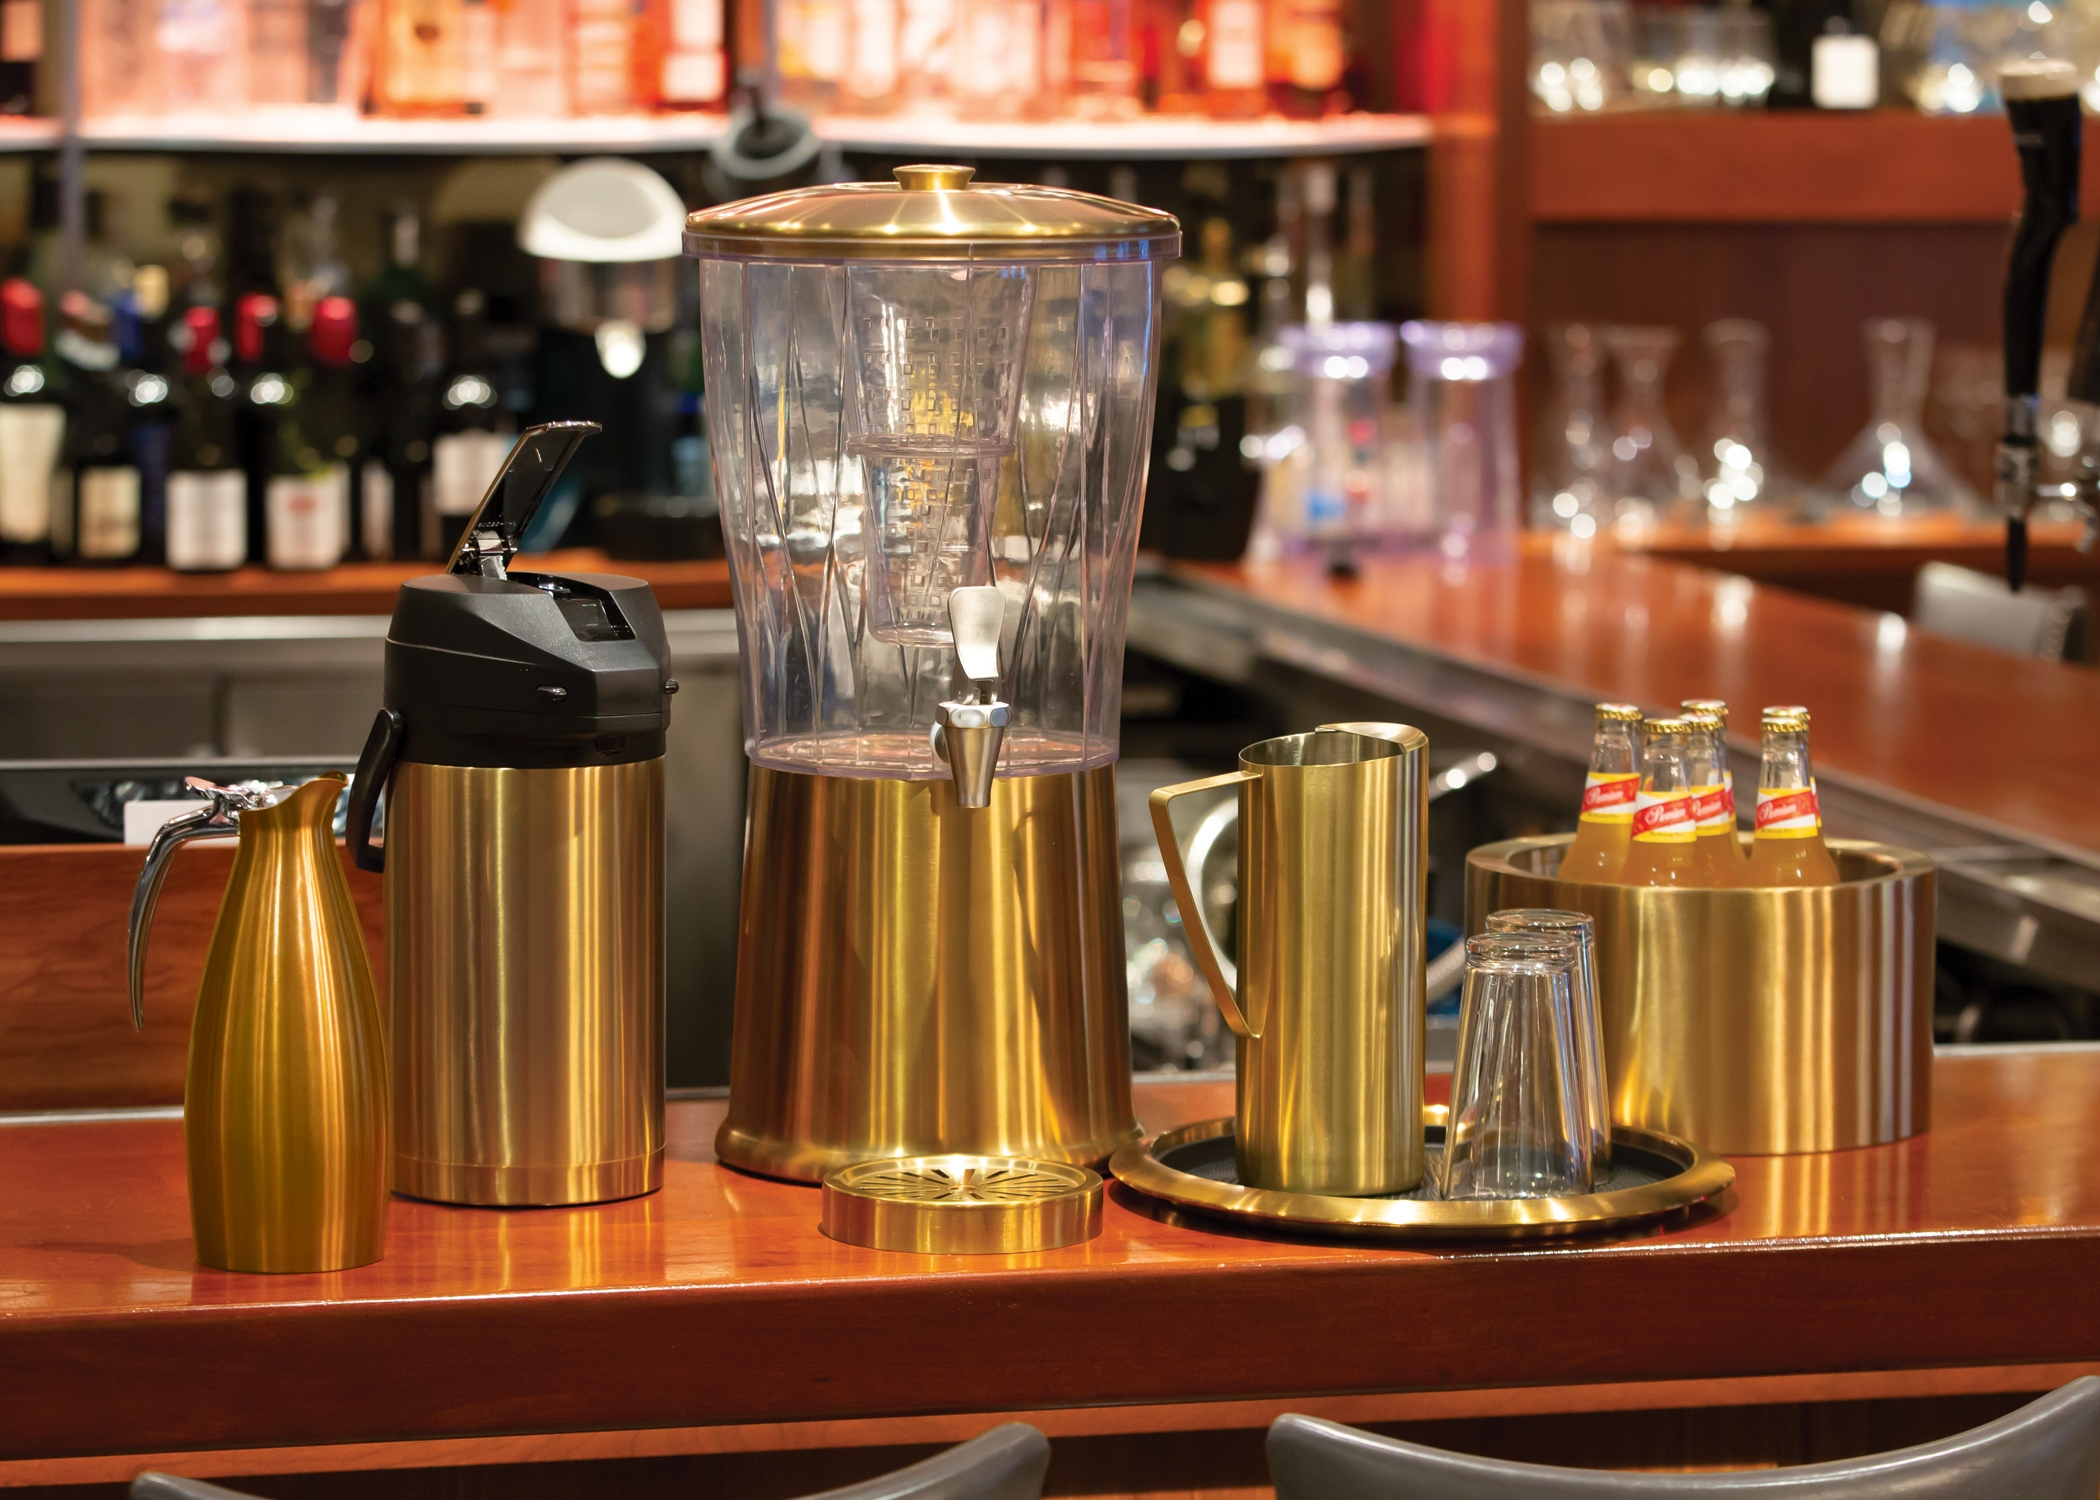 Photo of buffet glassware at a restaurant by company Service Ideas